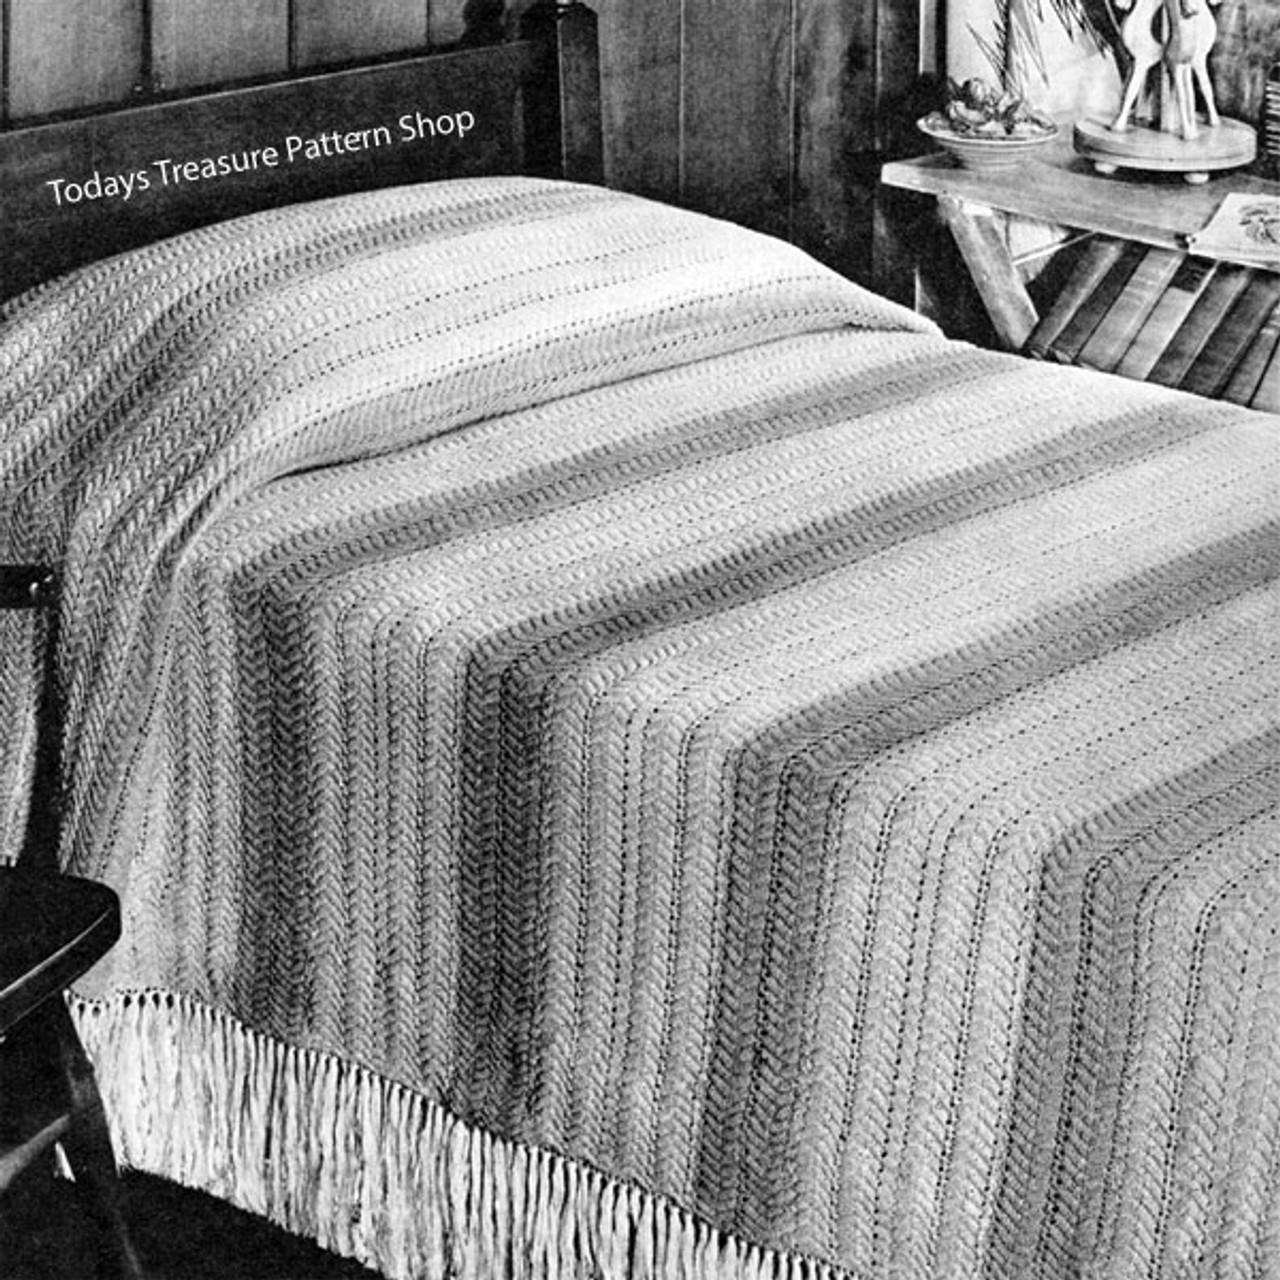 Vintage Knitted Bedspread Pattern in stripes